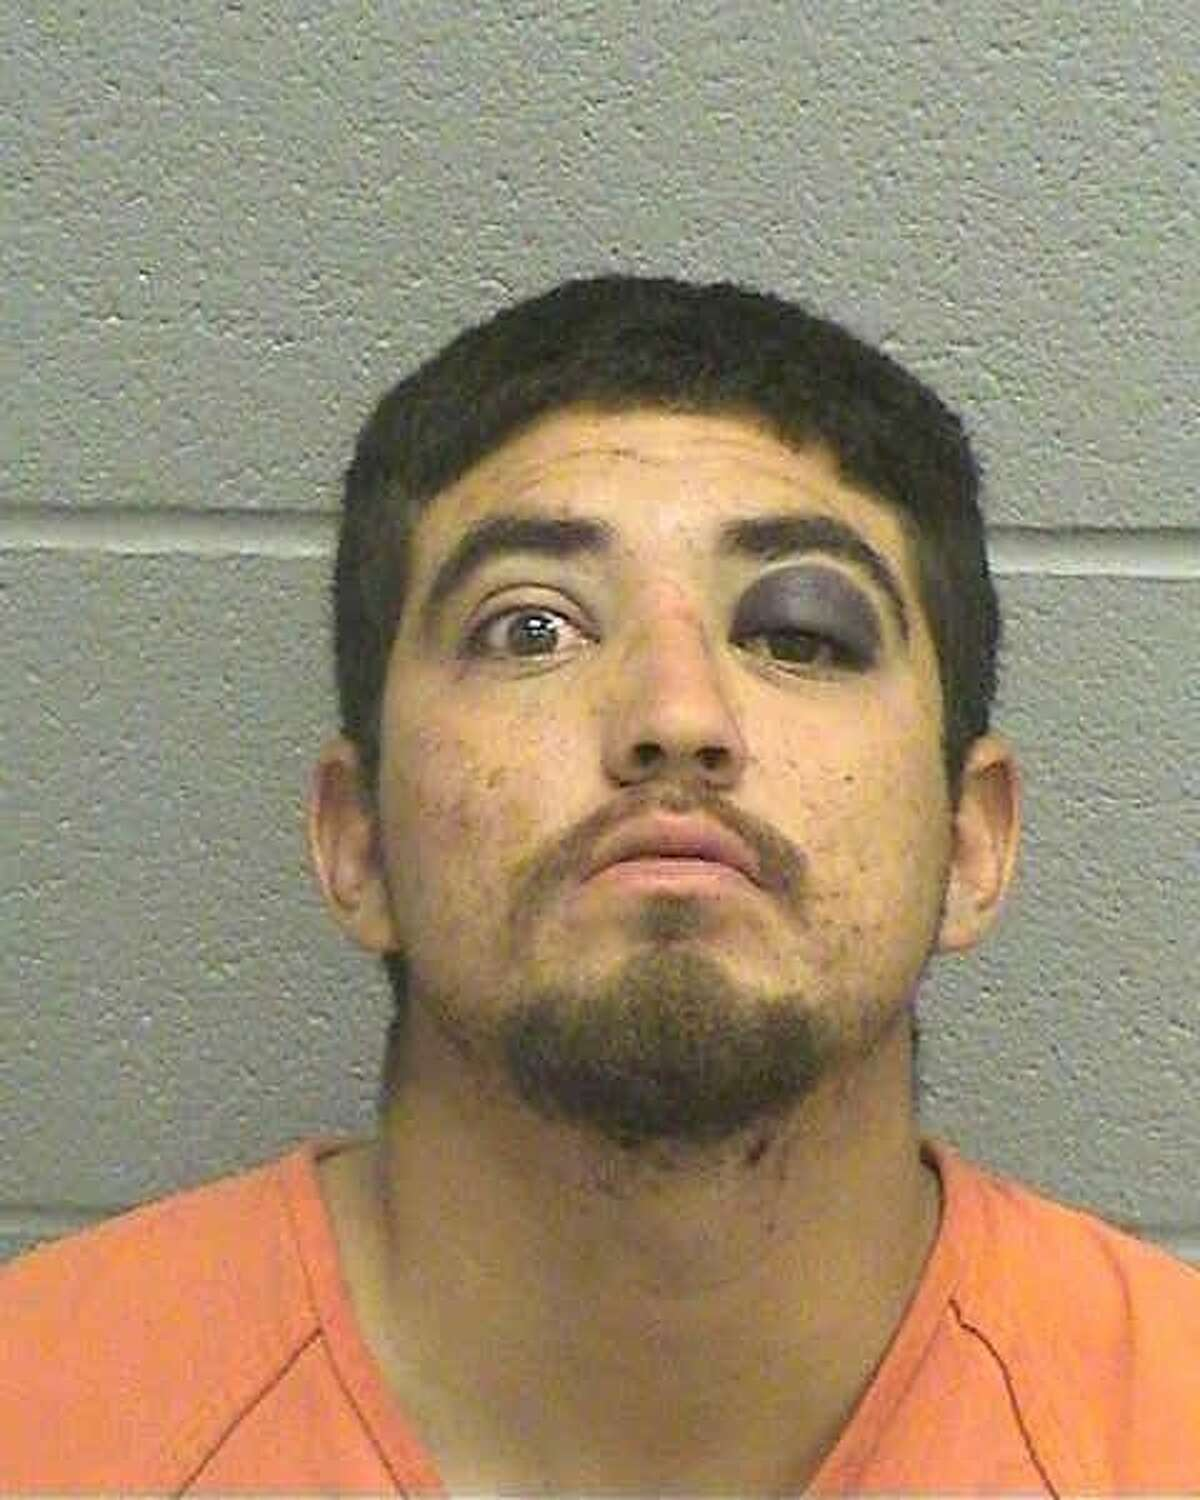 Christopher G. Ibarra, 22, was charged with two third-degree felonies of evading arrest in a motor vehicle and assault of a public servant. He was being held October 5 on a $10,000 bond for evading arrest and a $50,000 bond for the assault.An officer was southbound on the 2400 block of North Big Spring Street about 10 p.m. October 3 when a vehicle pulled out from the east side of the street, failed to yield to the police vehicle and almost caused a crash, according to the arrest affidavit.The officer then turned on the emergency lights and siren in order to initiate a traffic stop, but the driver, later identified as Ibarra, continued driving, according to the affidavit. After a pursuit, another officer threw stop sticks in front of the vehicle at the intersection of West Dengar Avenue and North Main Street. At this point, Ibarra pulled in a driveway on Dengar, according to the affidavit.